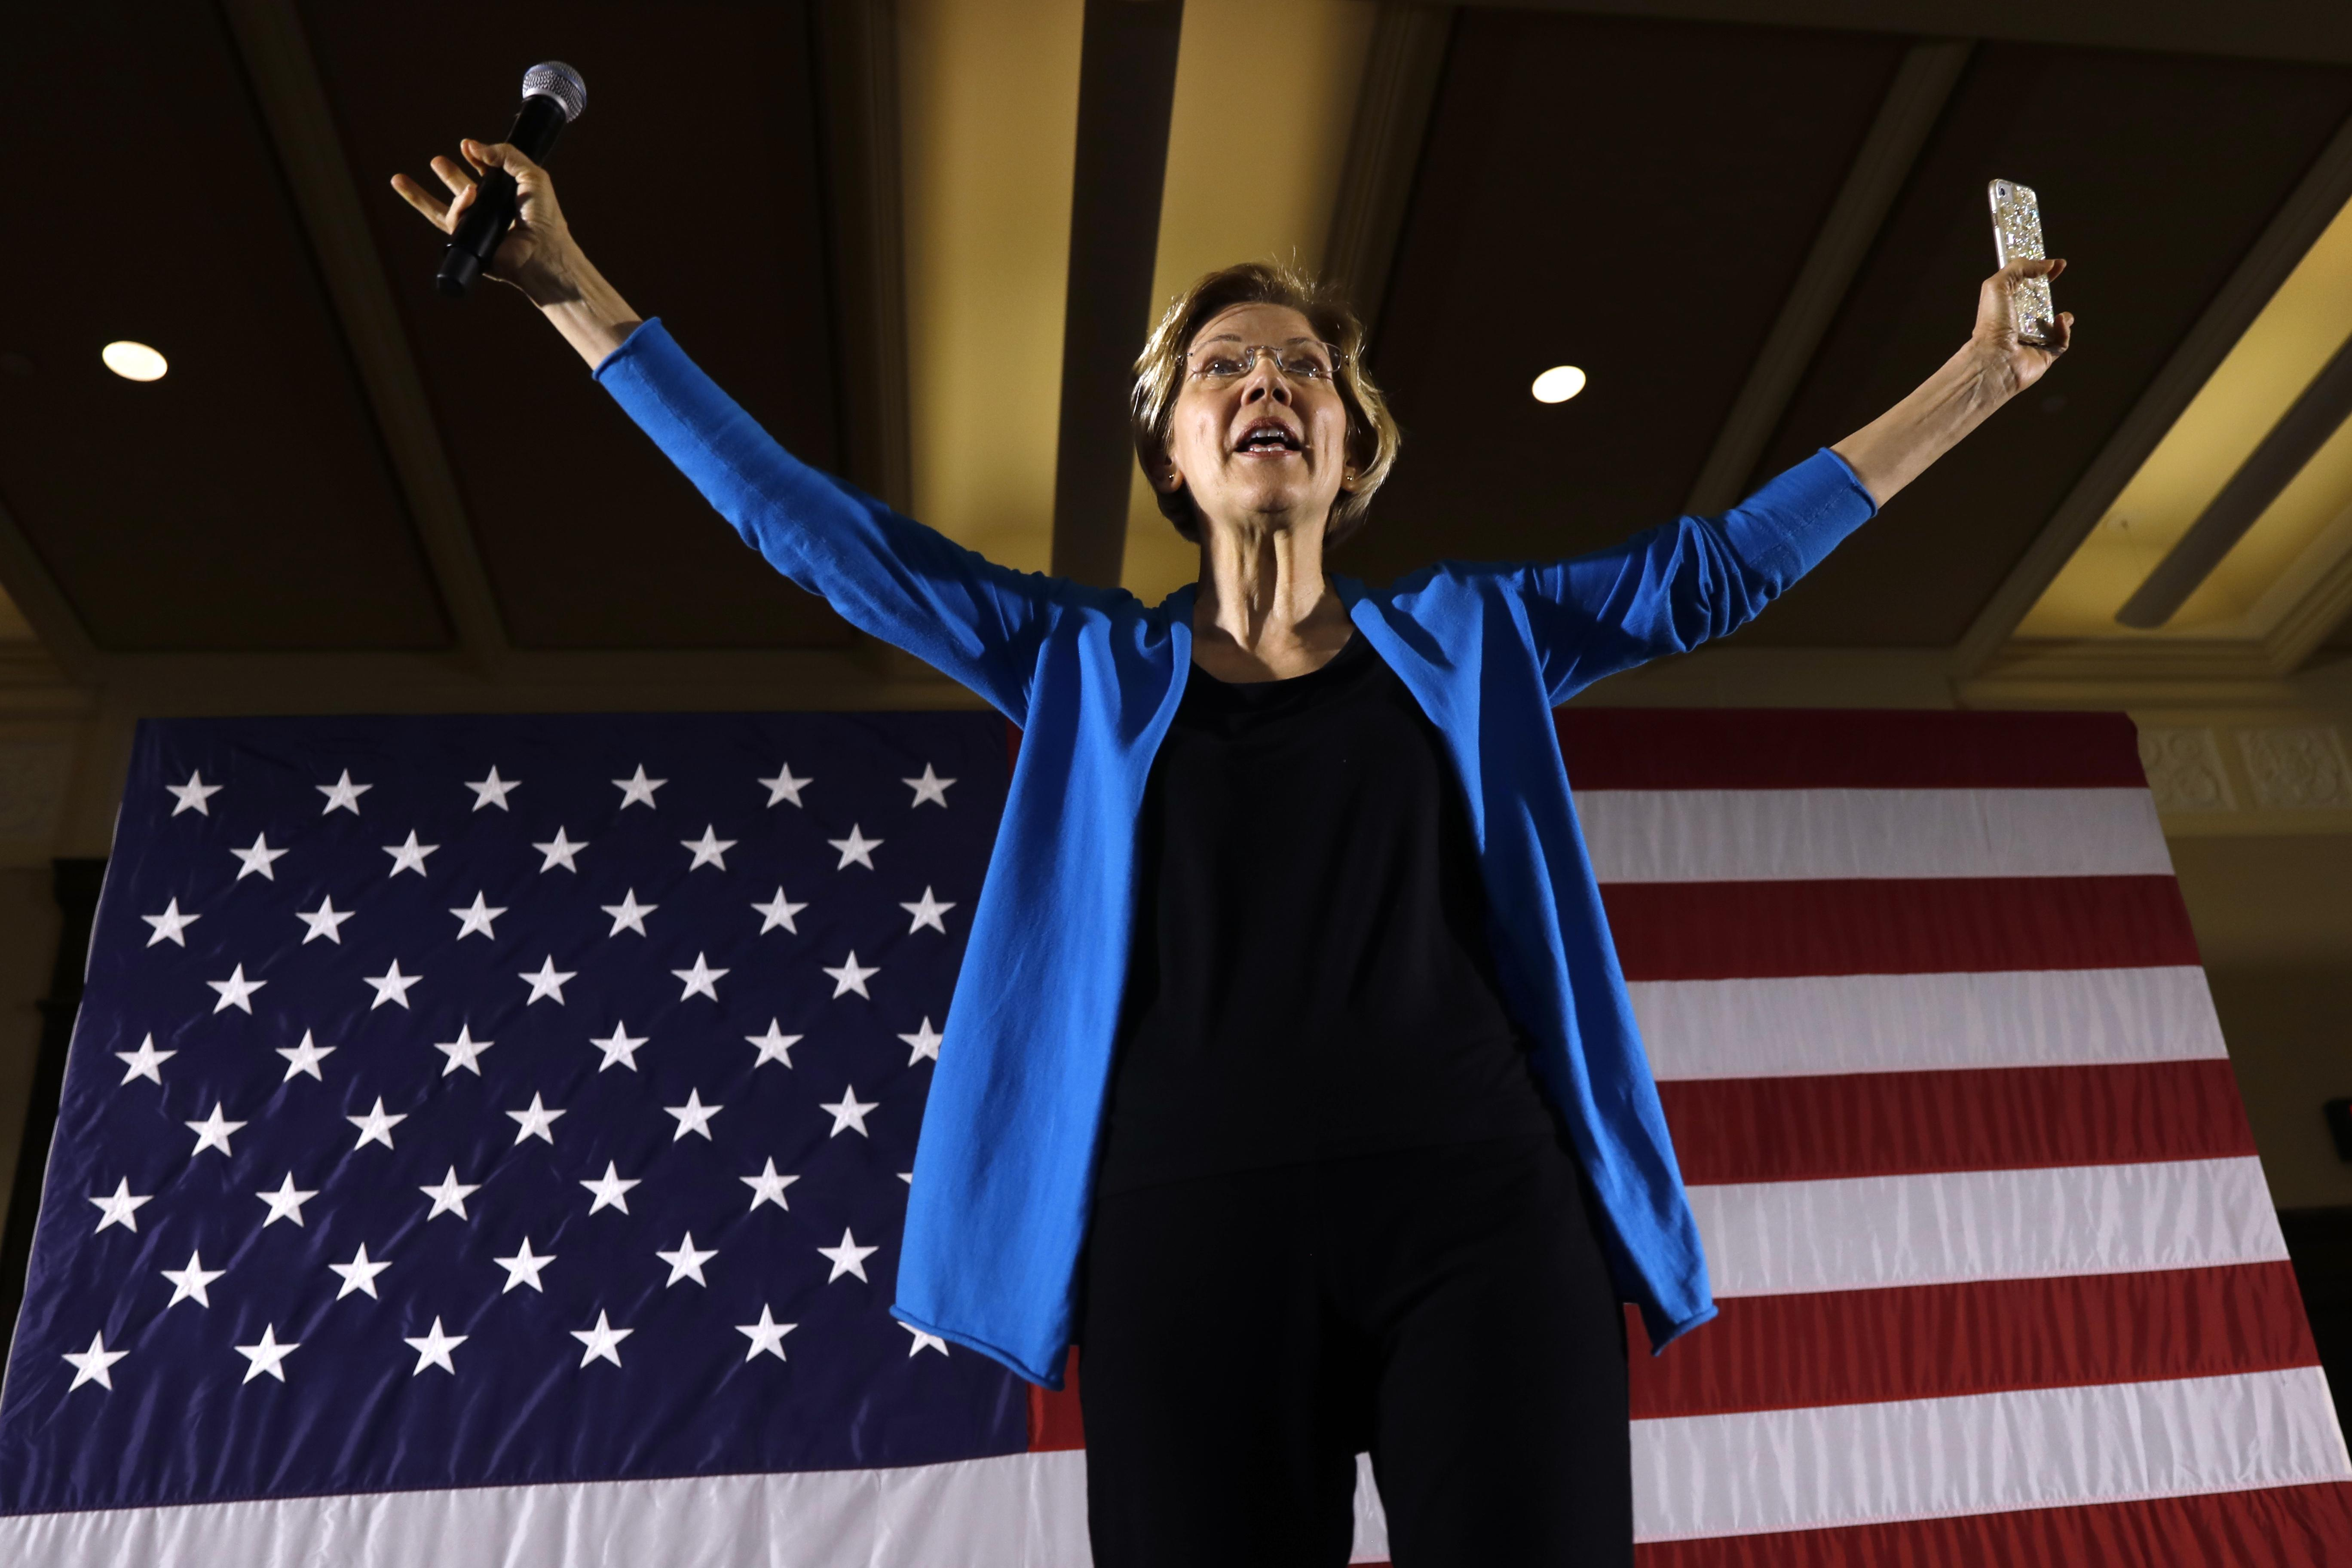 2020 Democrats embrace 'tax-and-spend liberals' label, expand wish list